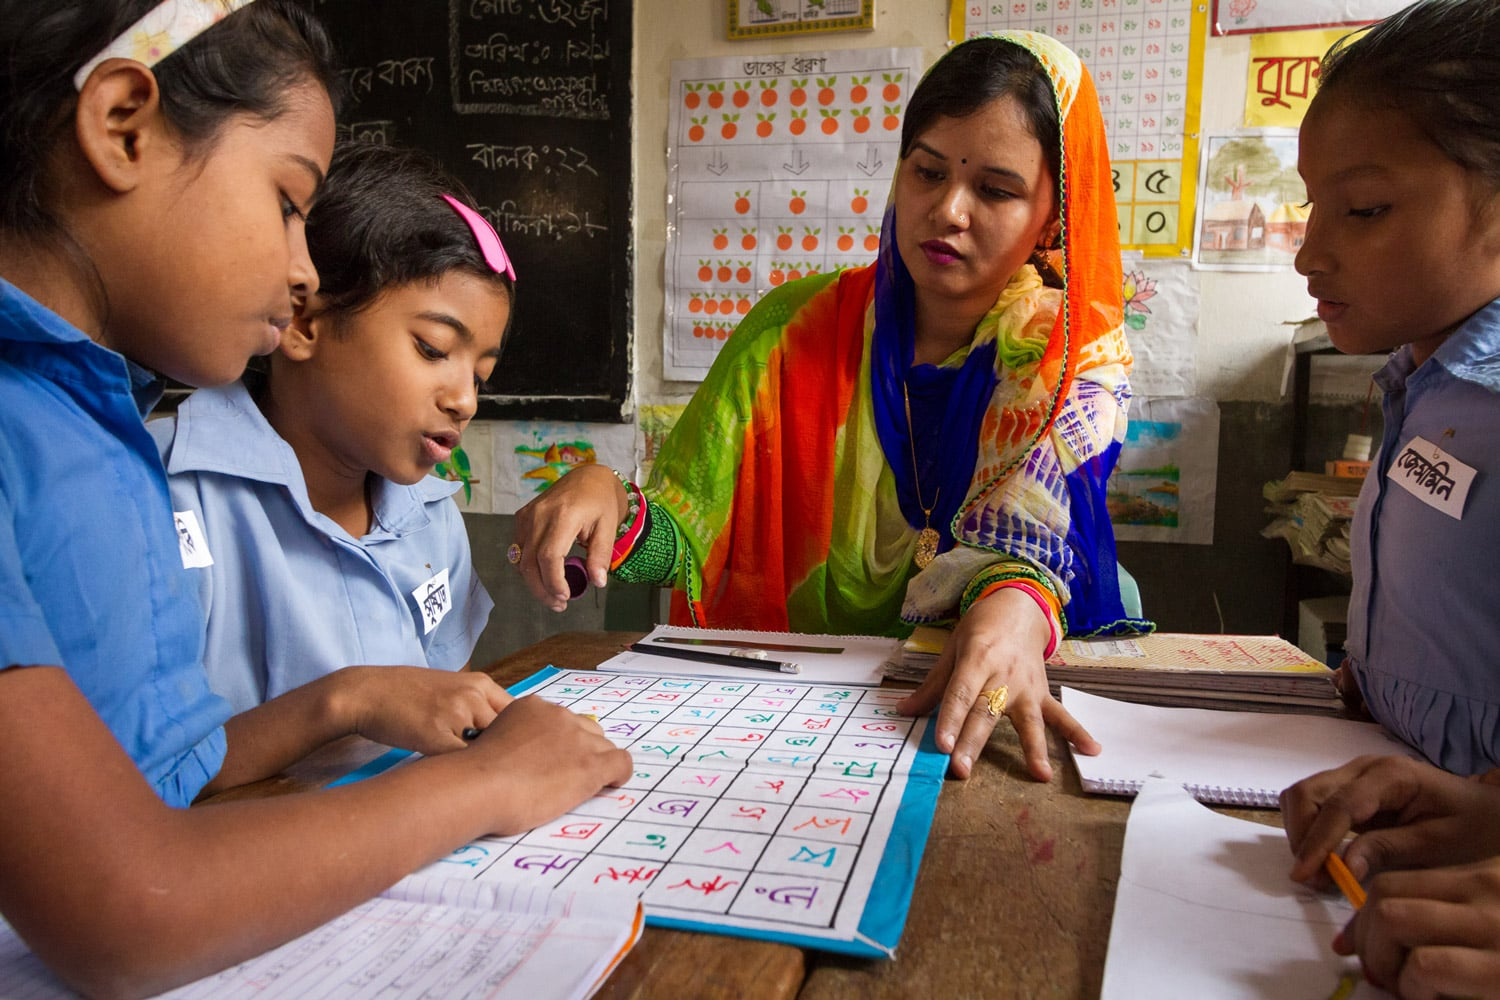 """Shushmita and other classmates play a board game designed by her teacher, Ayesha Parveen. The game is designed to help them recognize the 51 letters that make up the Bangla alphabet and learn the sounds each represents. """"After playing for a few months, they started to recognize the letters,"""" Ayesha says. """"Now Shushmita can recognise all of them and read without my help."""" Shushmita is one of the lucky ones. In many if not most schools in Bangladesh her teacher would never have even recognized the problem. But in Uttar Kafrul Government primary school, the teachers have all had training in UNICEF's Each Child Learns (ECL) programme. Built into the approach are methods through which teachers ensure the continuous assessment of each student's performance and work with them creatively as individuals, even in the school's over-crowded classrooms."""